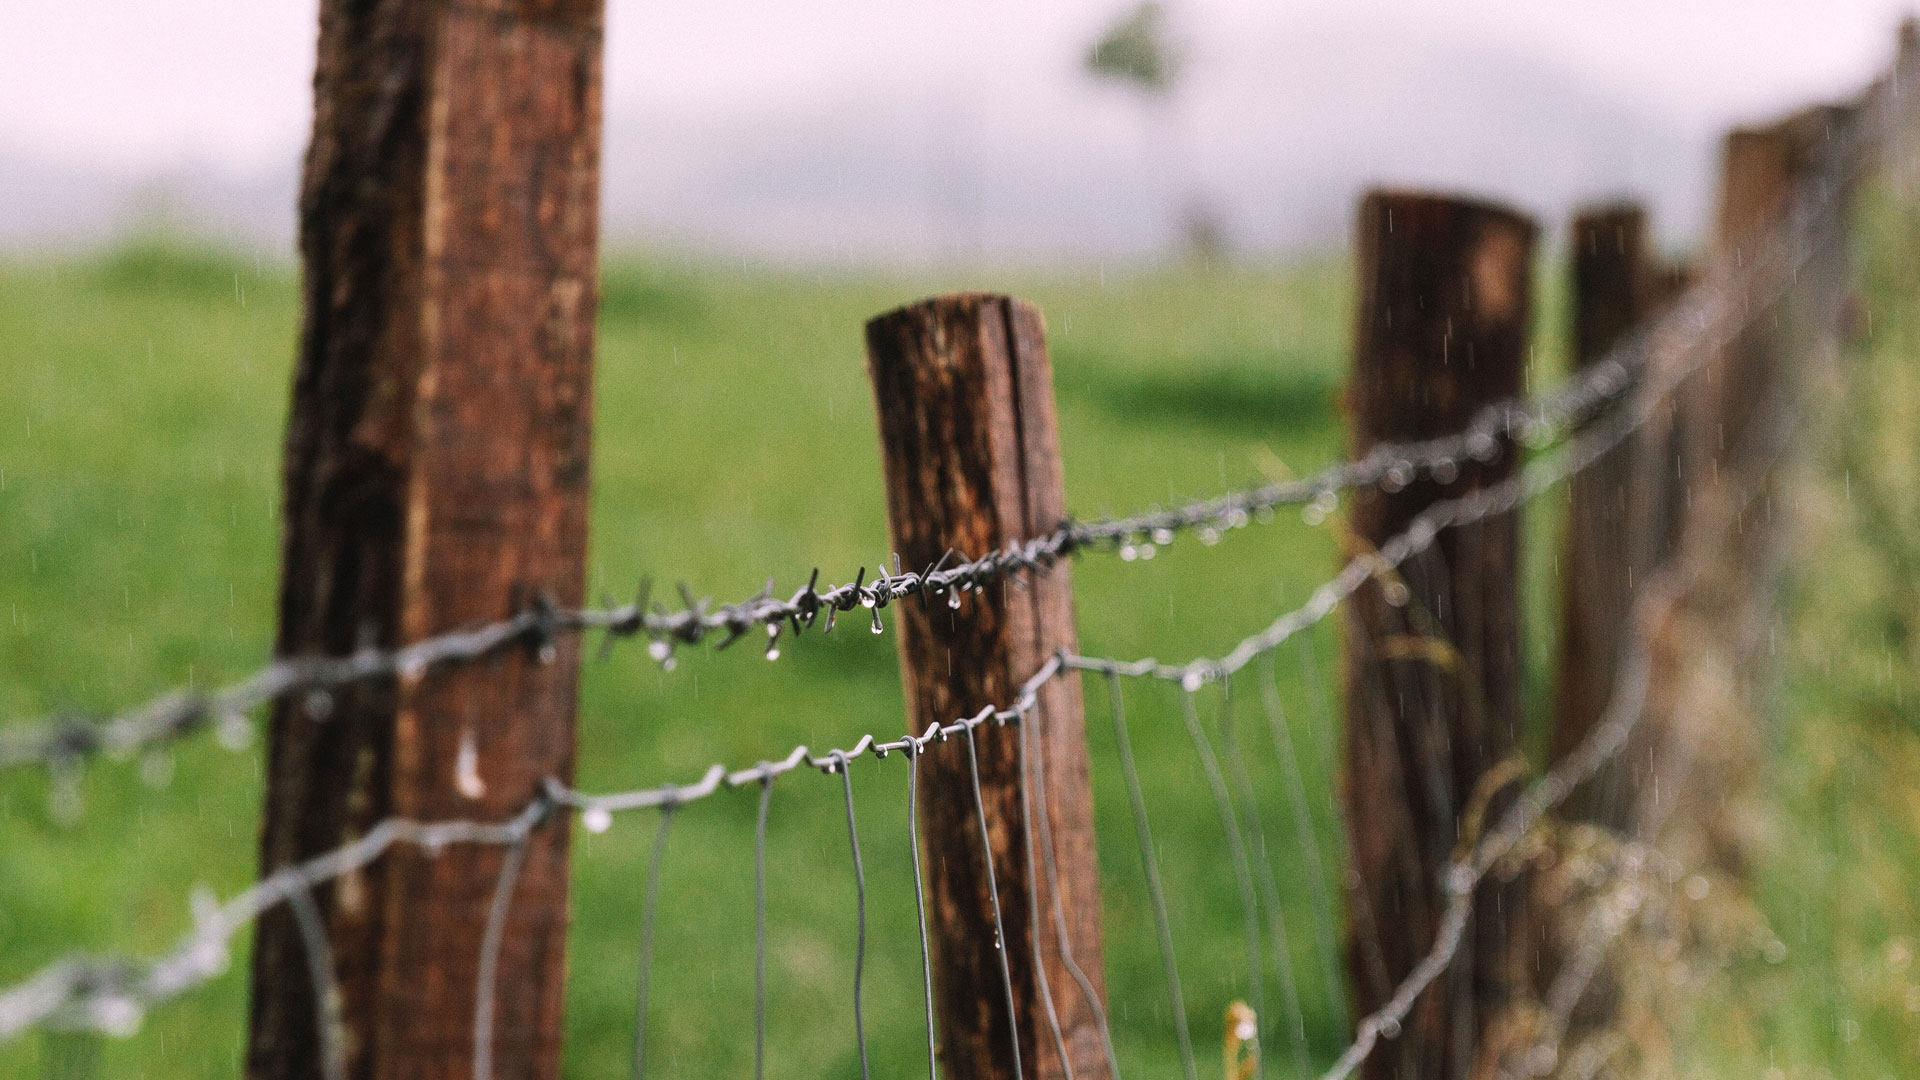 Adelaide Hills Fencing Repairs: I enjoy it!